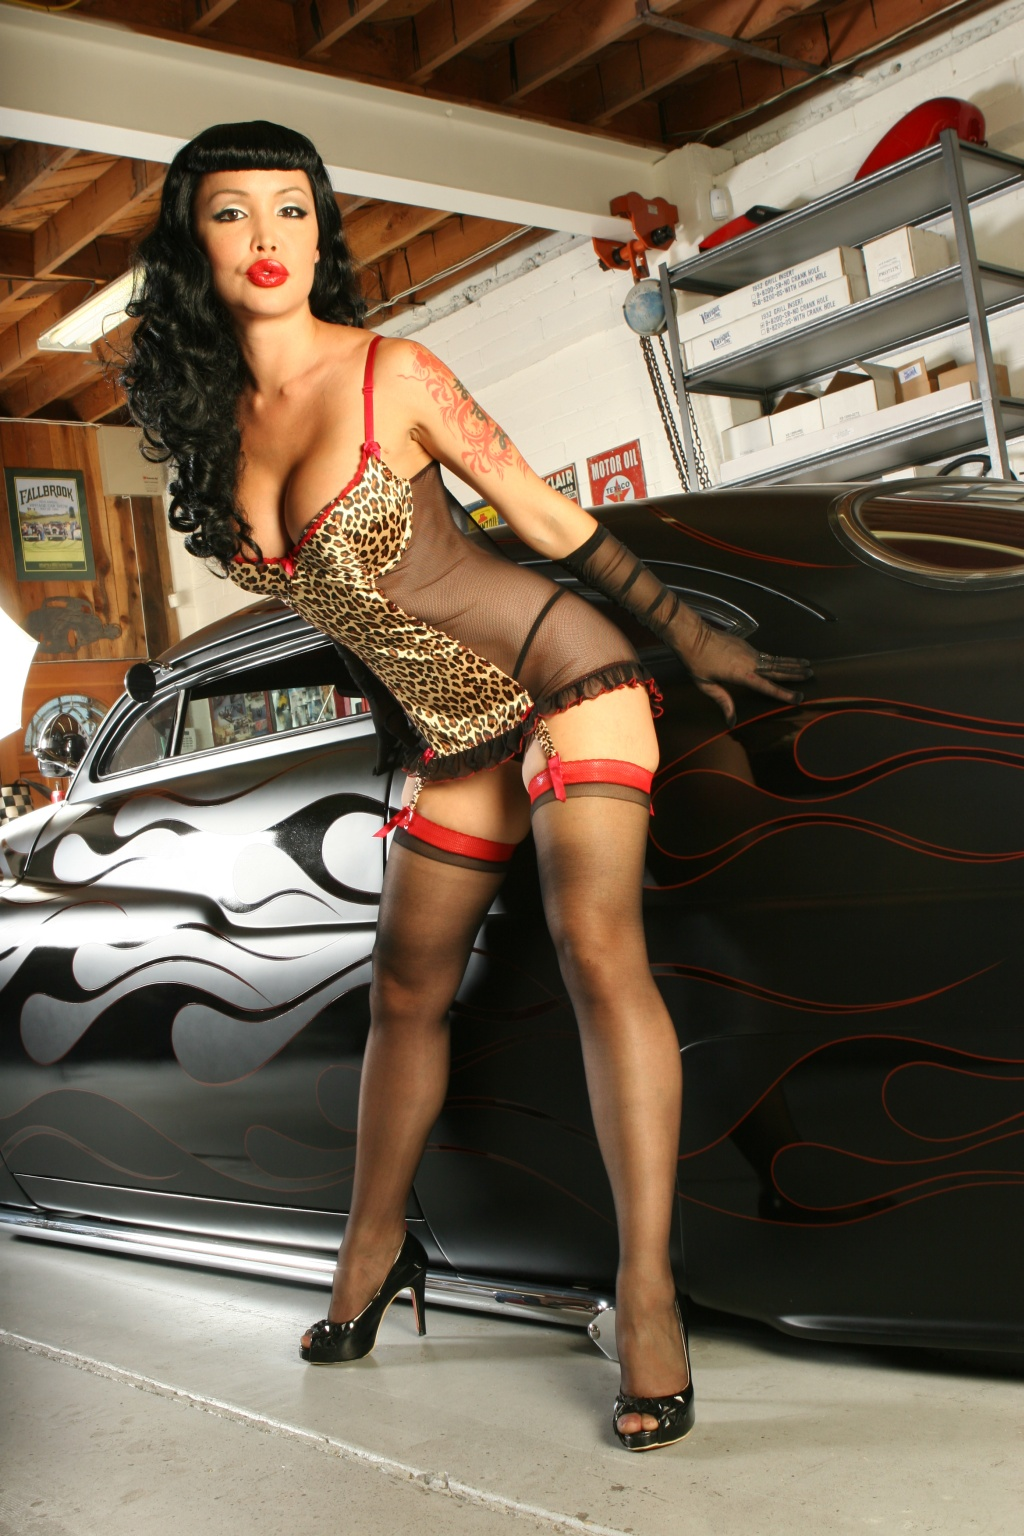 naked pin up girl with hot rod